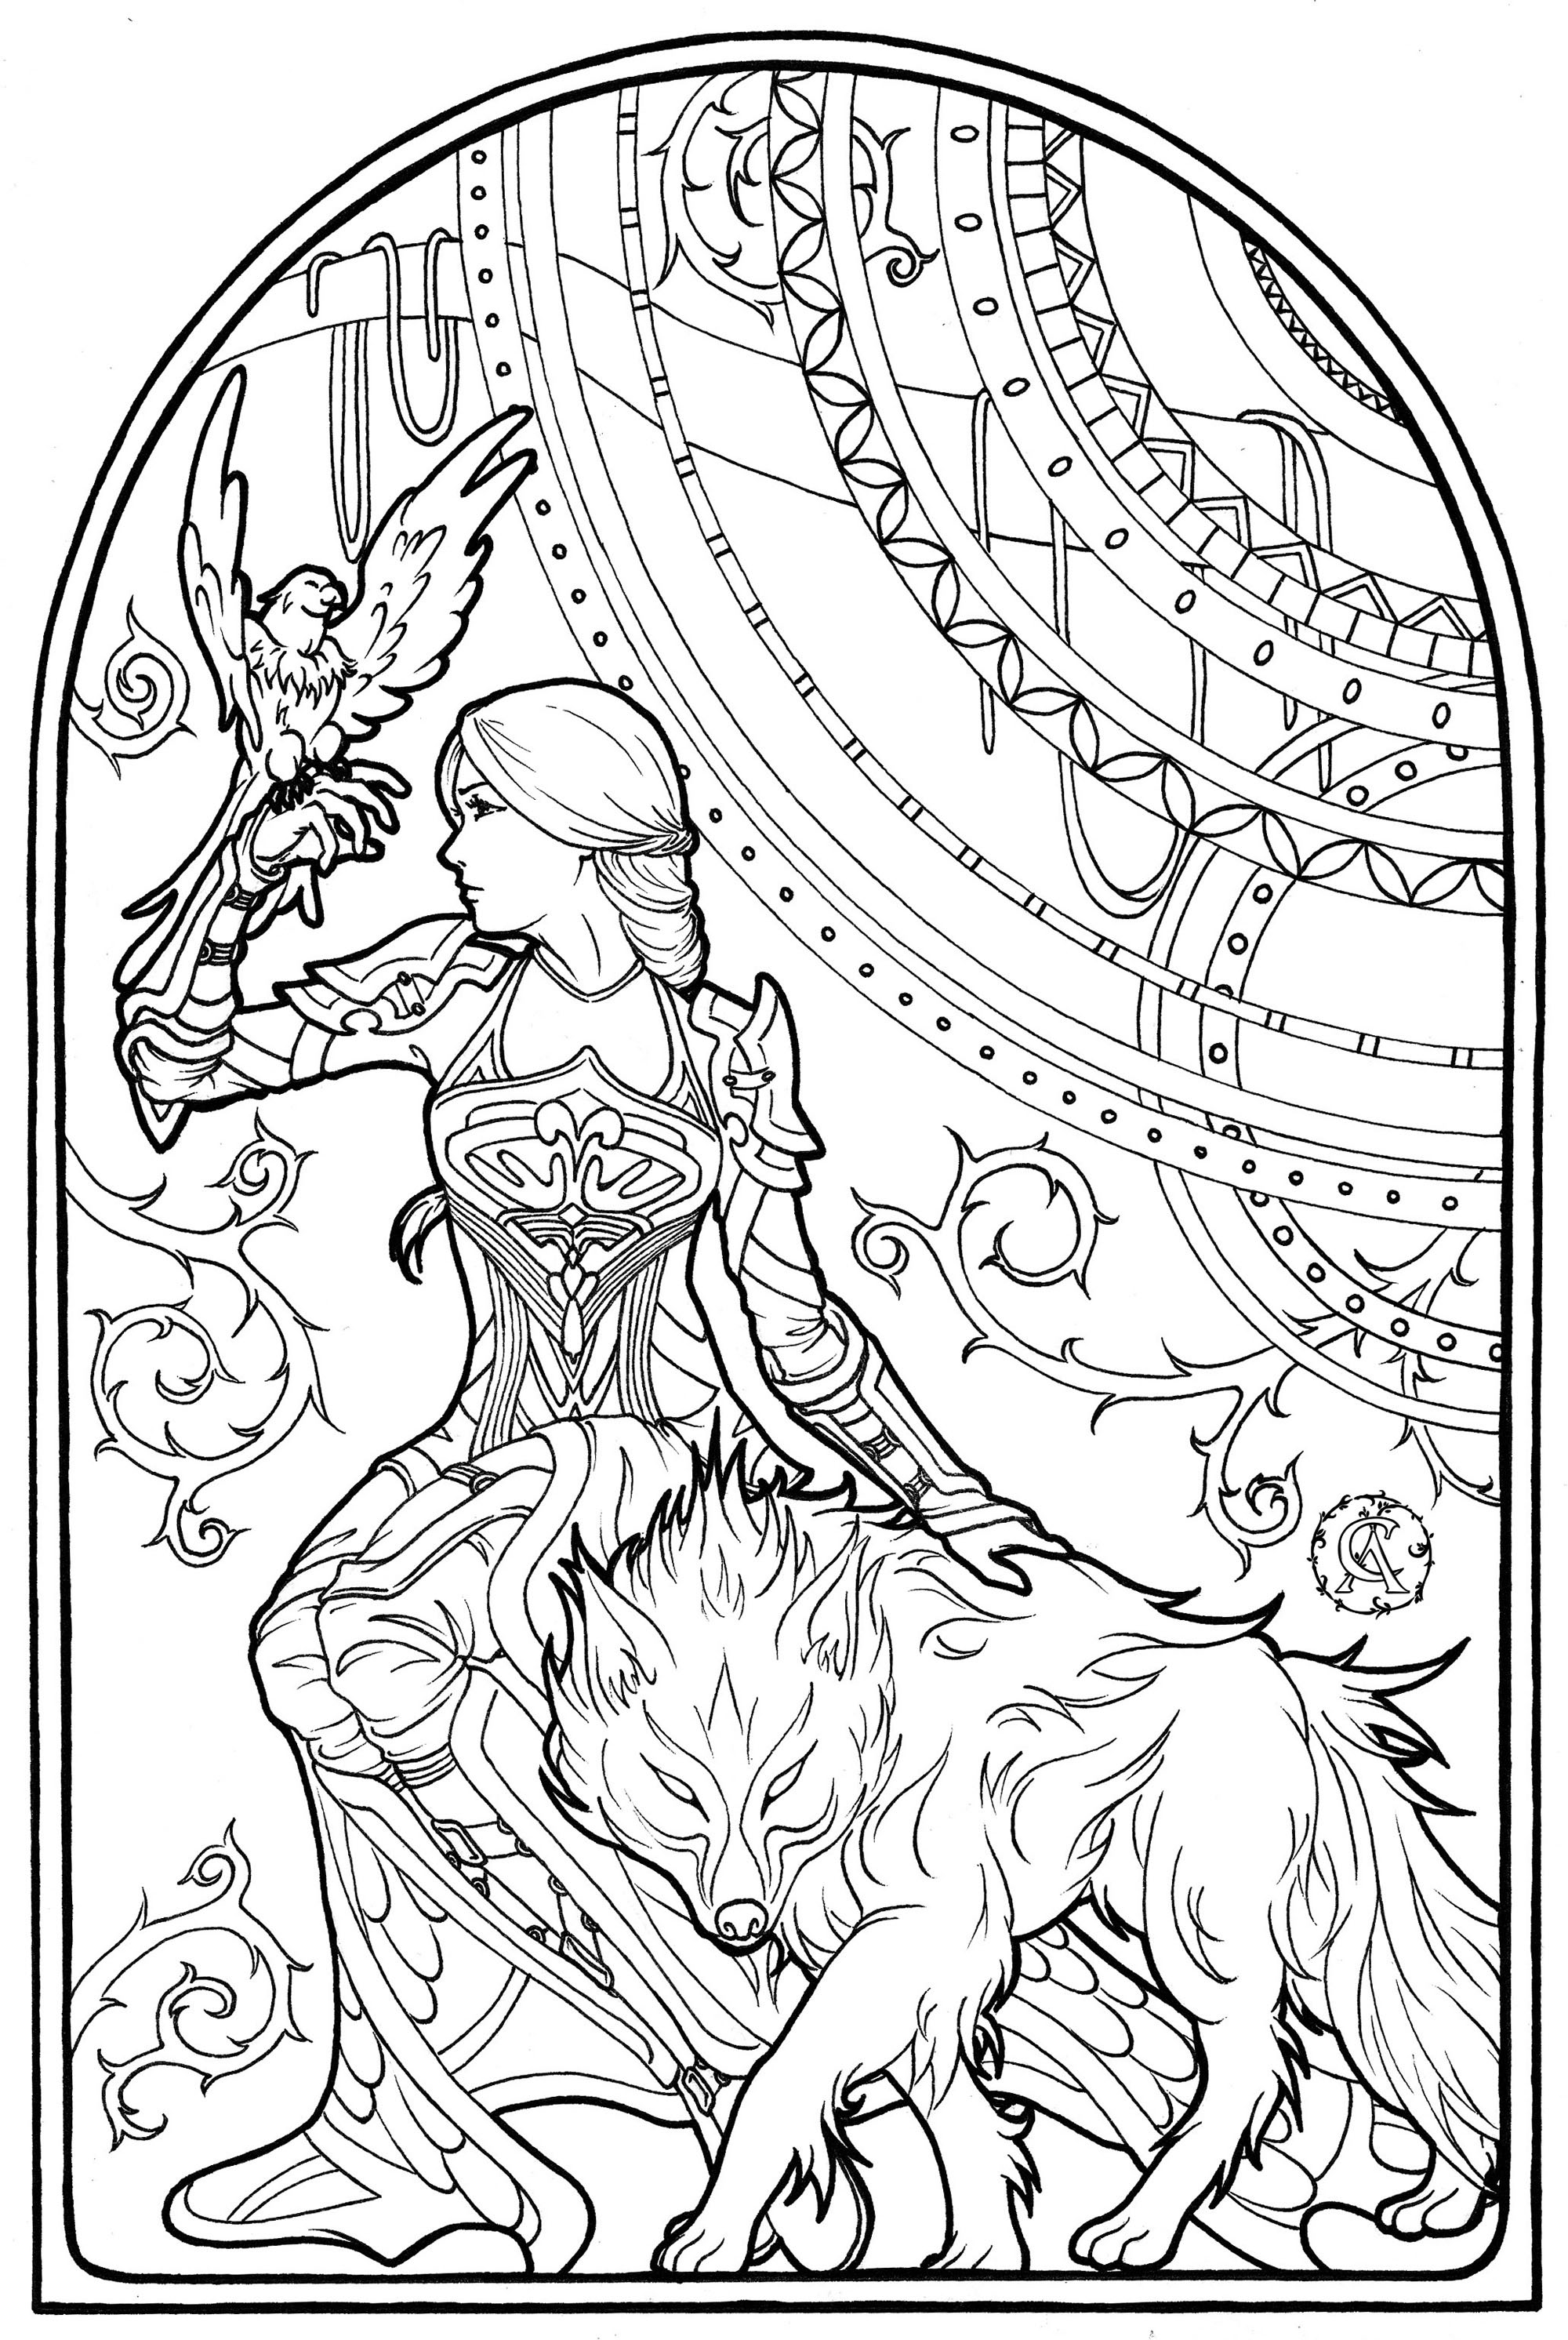 This intrepid woman is in the company of her hawk and her enchanted wolf. Drawn in Art Nouveau style